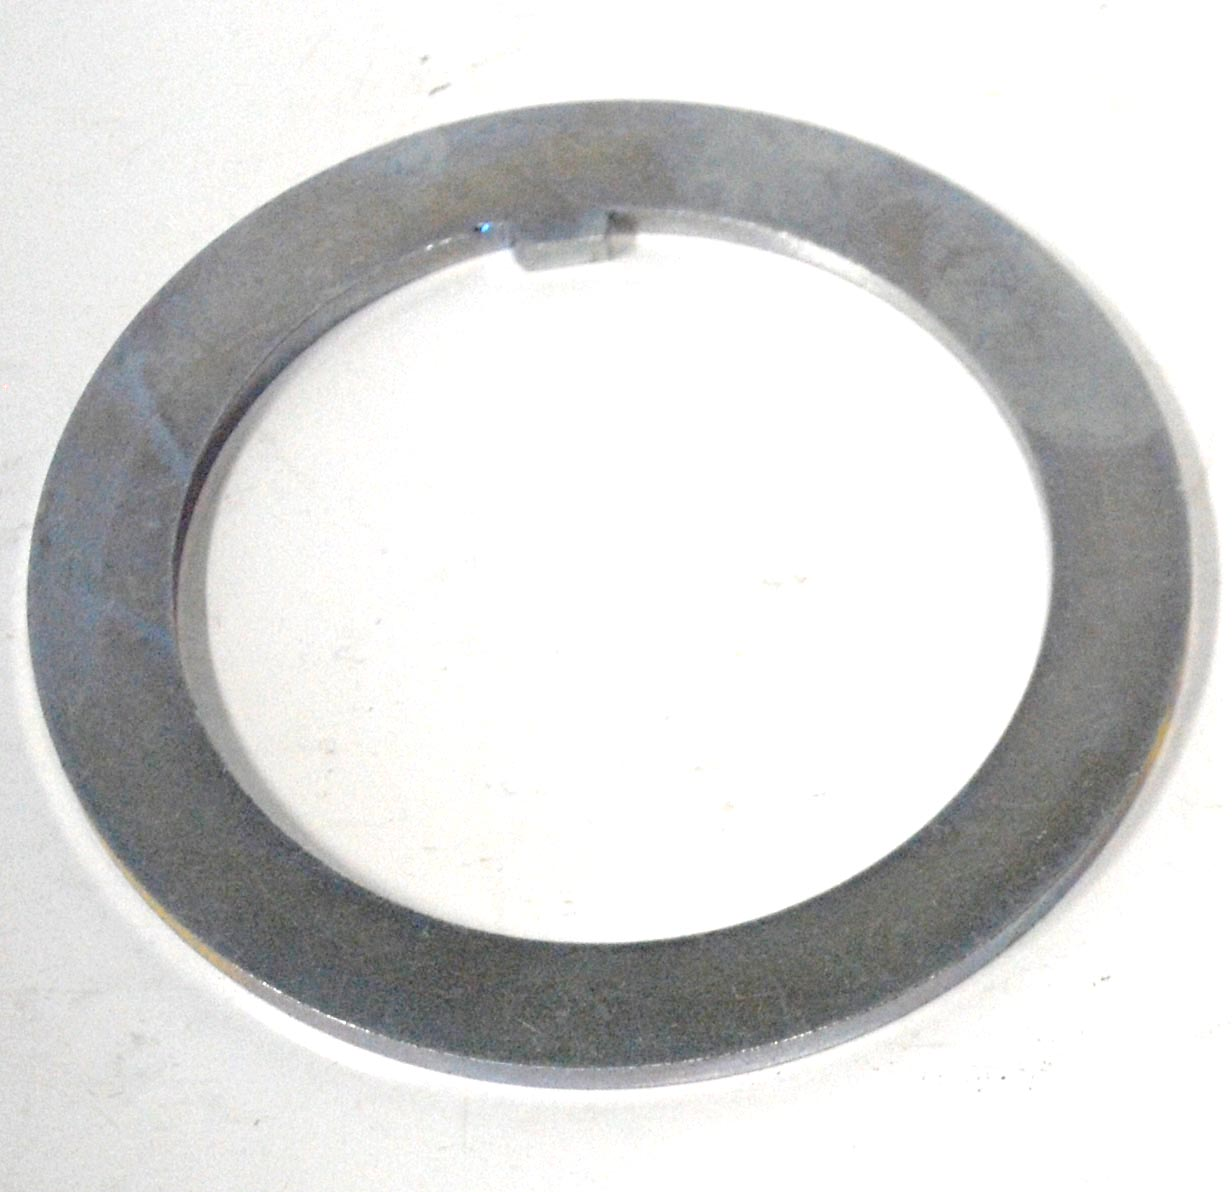 Part # 4276 GN Snout Lock Washer